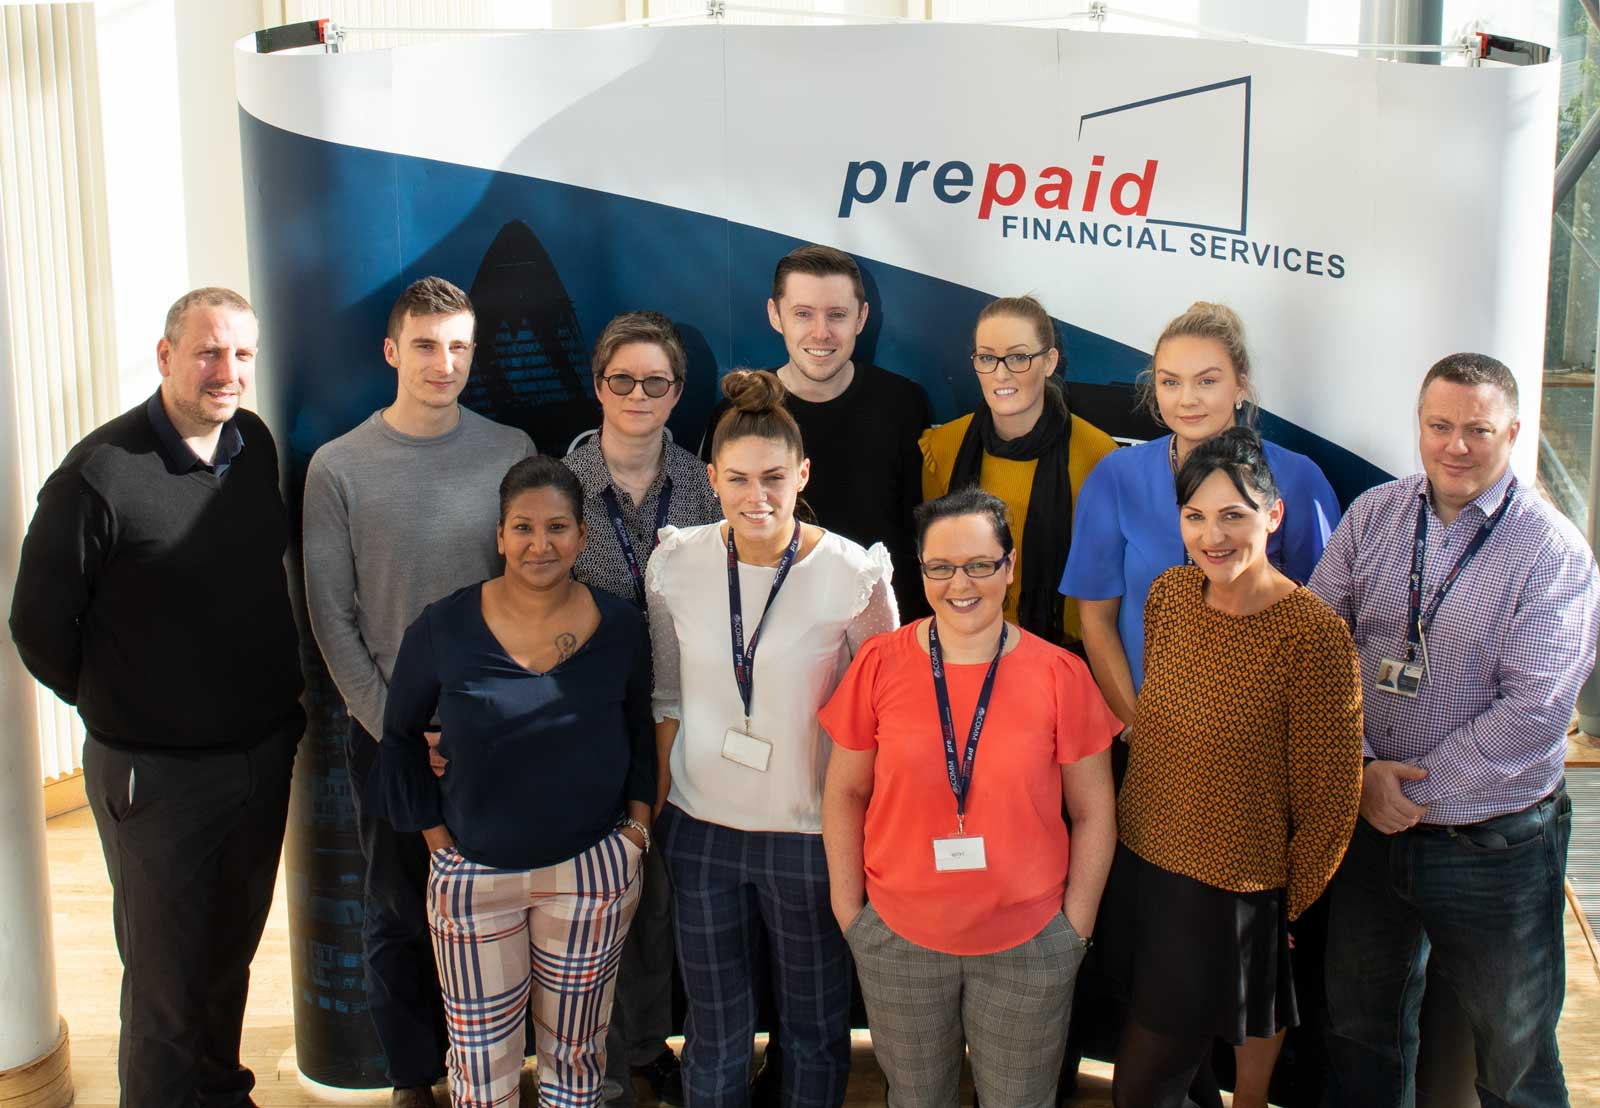 Prepaid Financial Services Announces Details of Graduate & Internship Programme